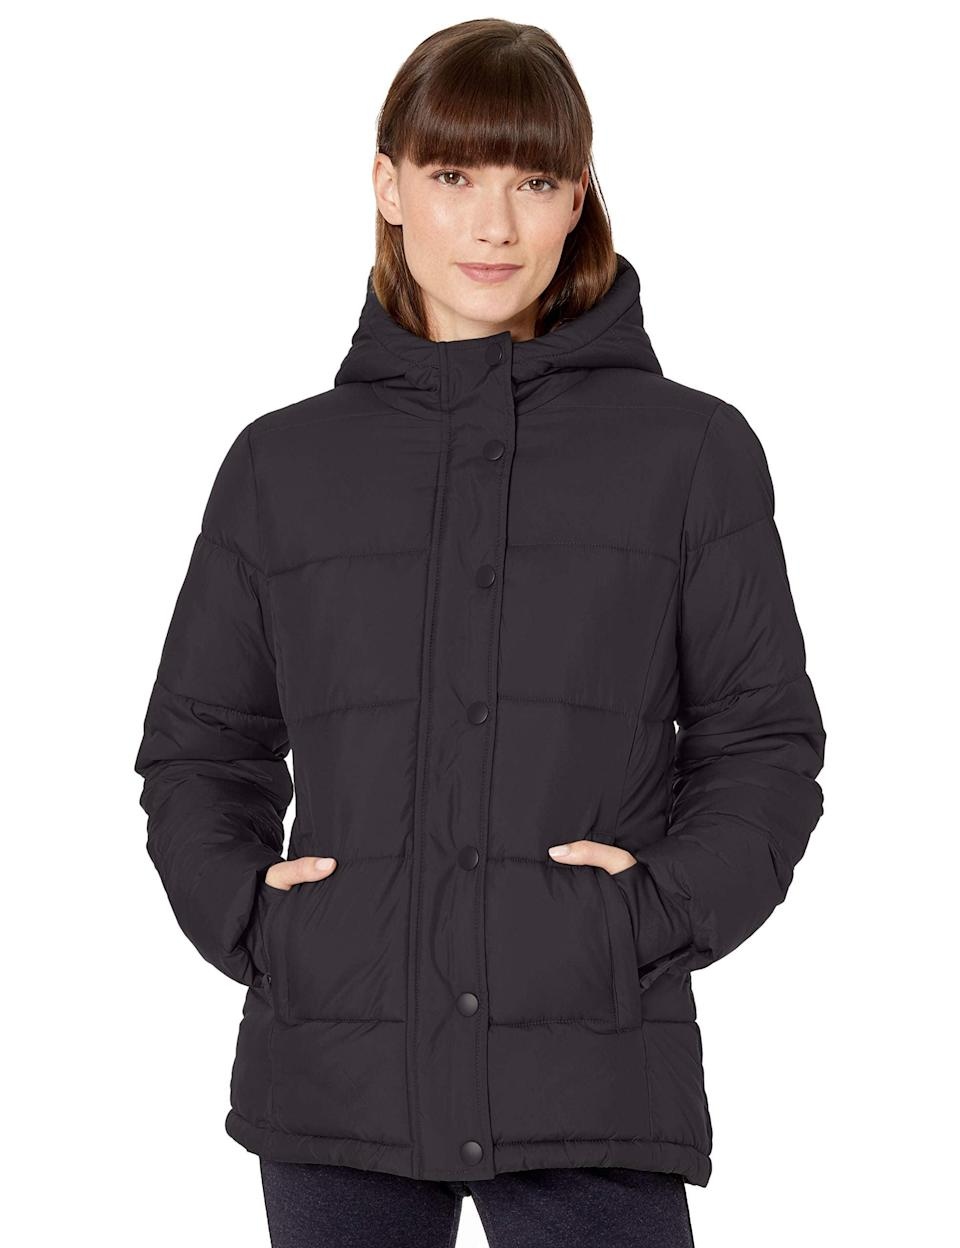 "<br><br><strong>Amazon Essentials</strong> Hooded Puffer Coat, $, available at <a href=""https://amzn.to/2SPhUHE"" rel=""nofollow noopener"" target=""_blank"" data-ylk=""slk:Amazon Fashion"" class=""link rapid-noclick-resp"">Amazon Fashion</a>"